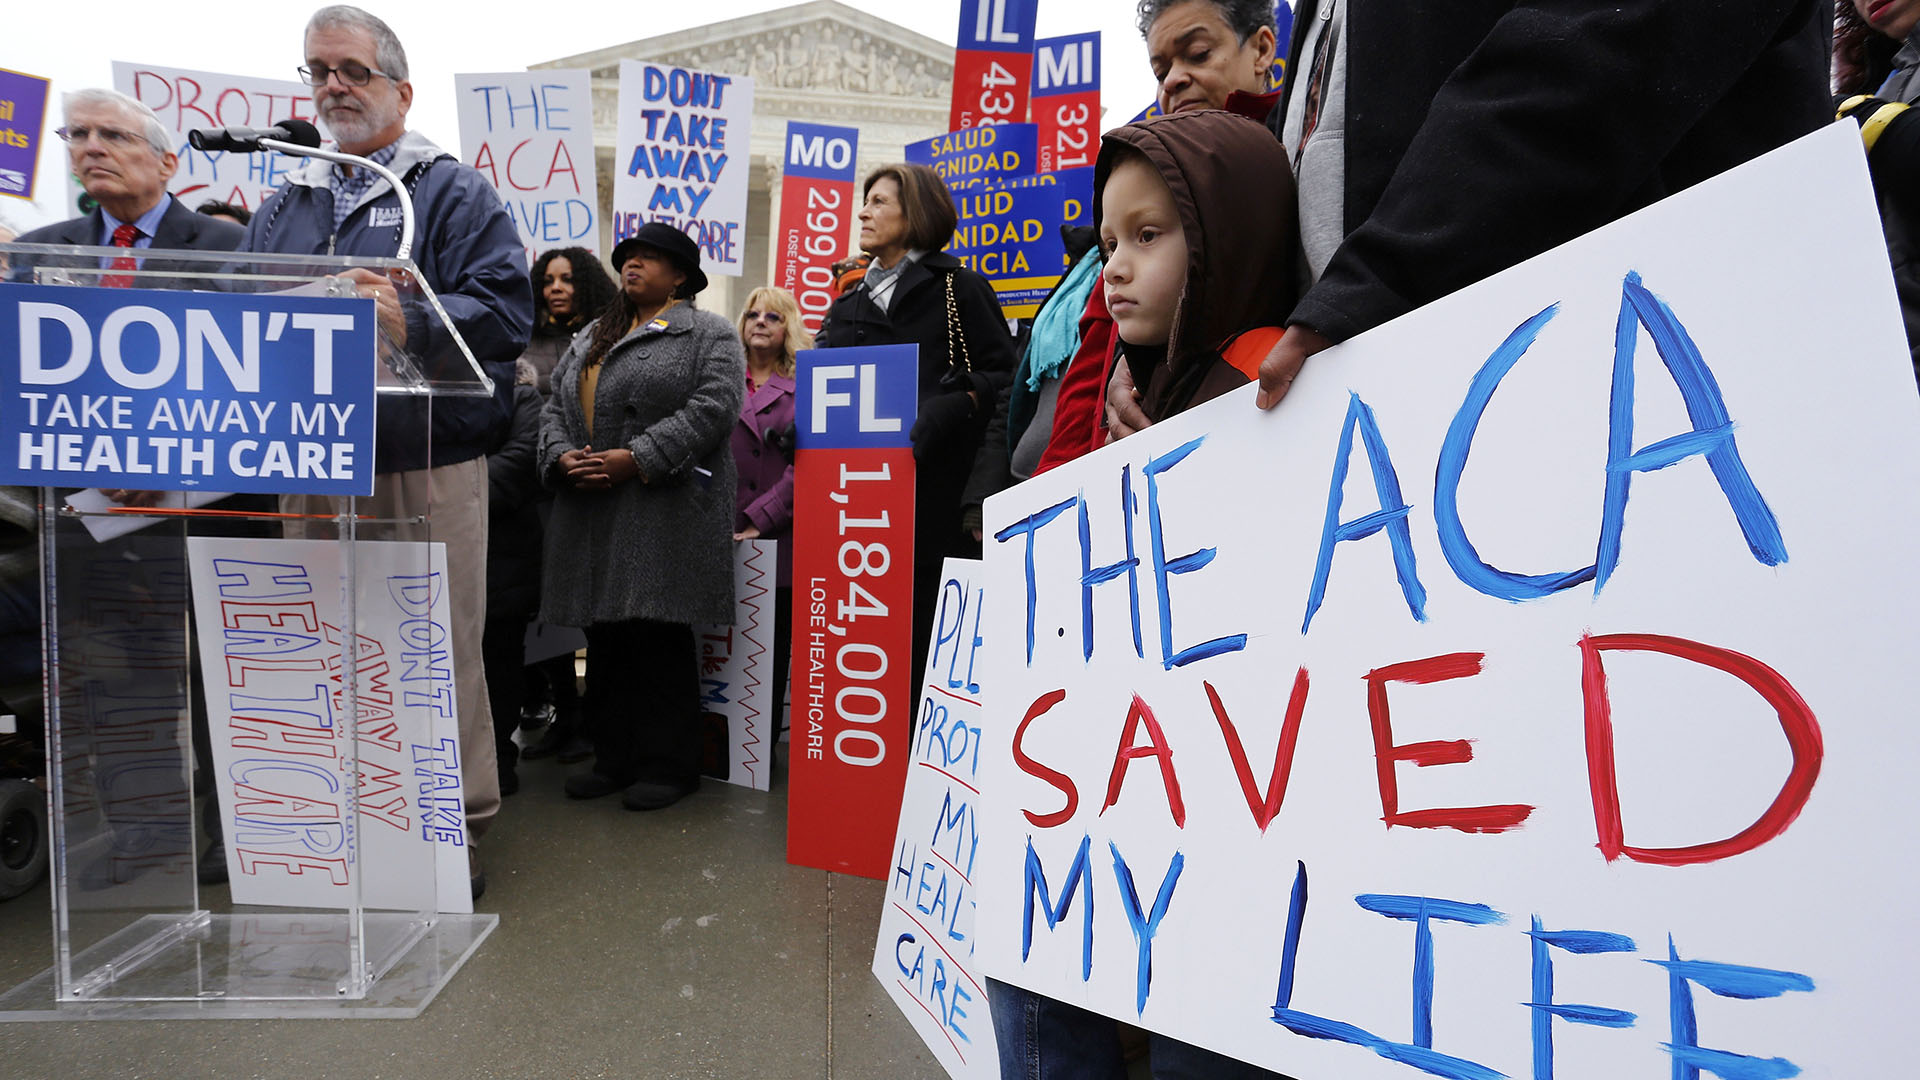 'Protect Our Care' group plans to push back against repeal of health law